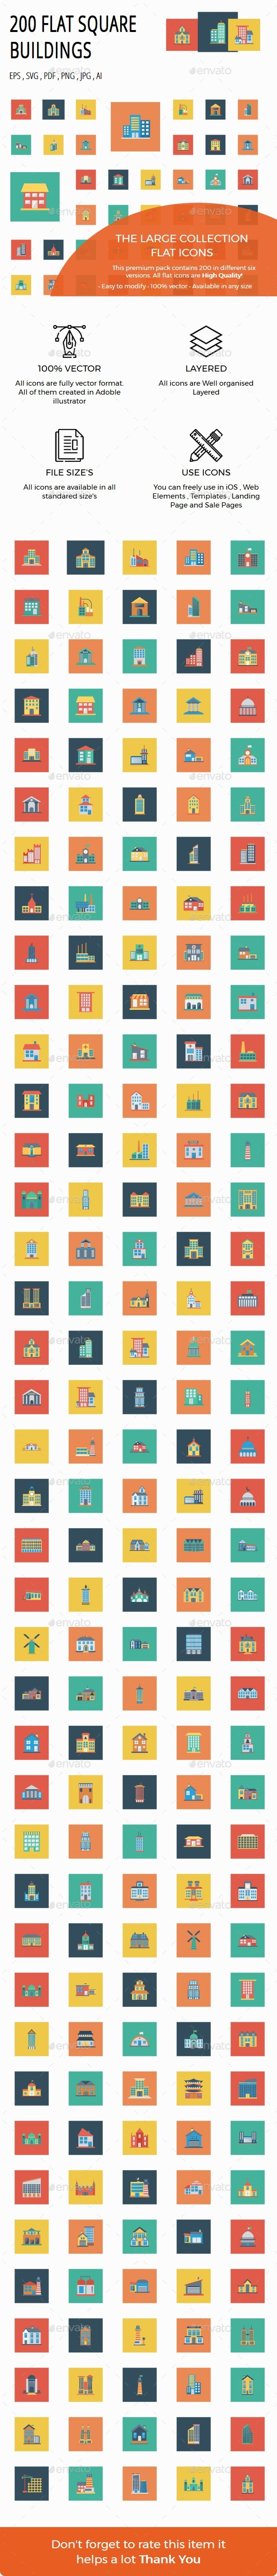 GraphicRiver 200 Building Flat Square icons 20492330